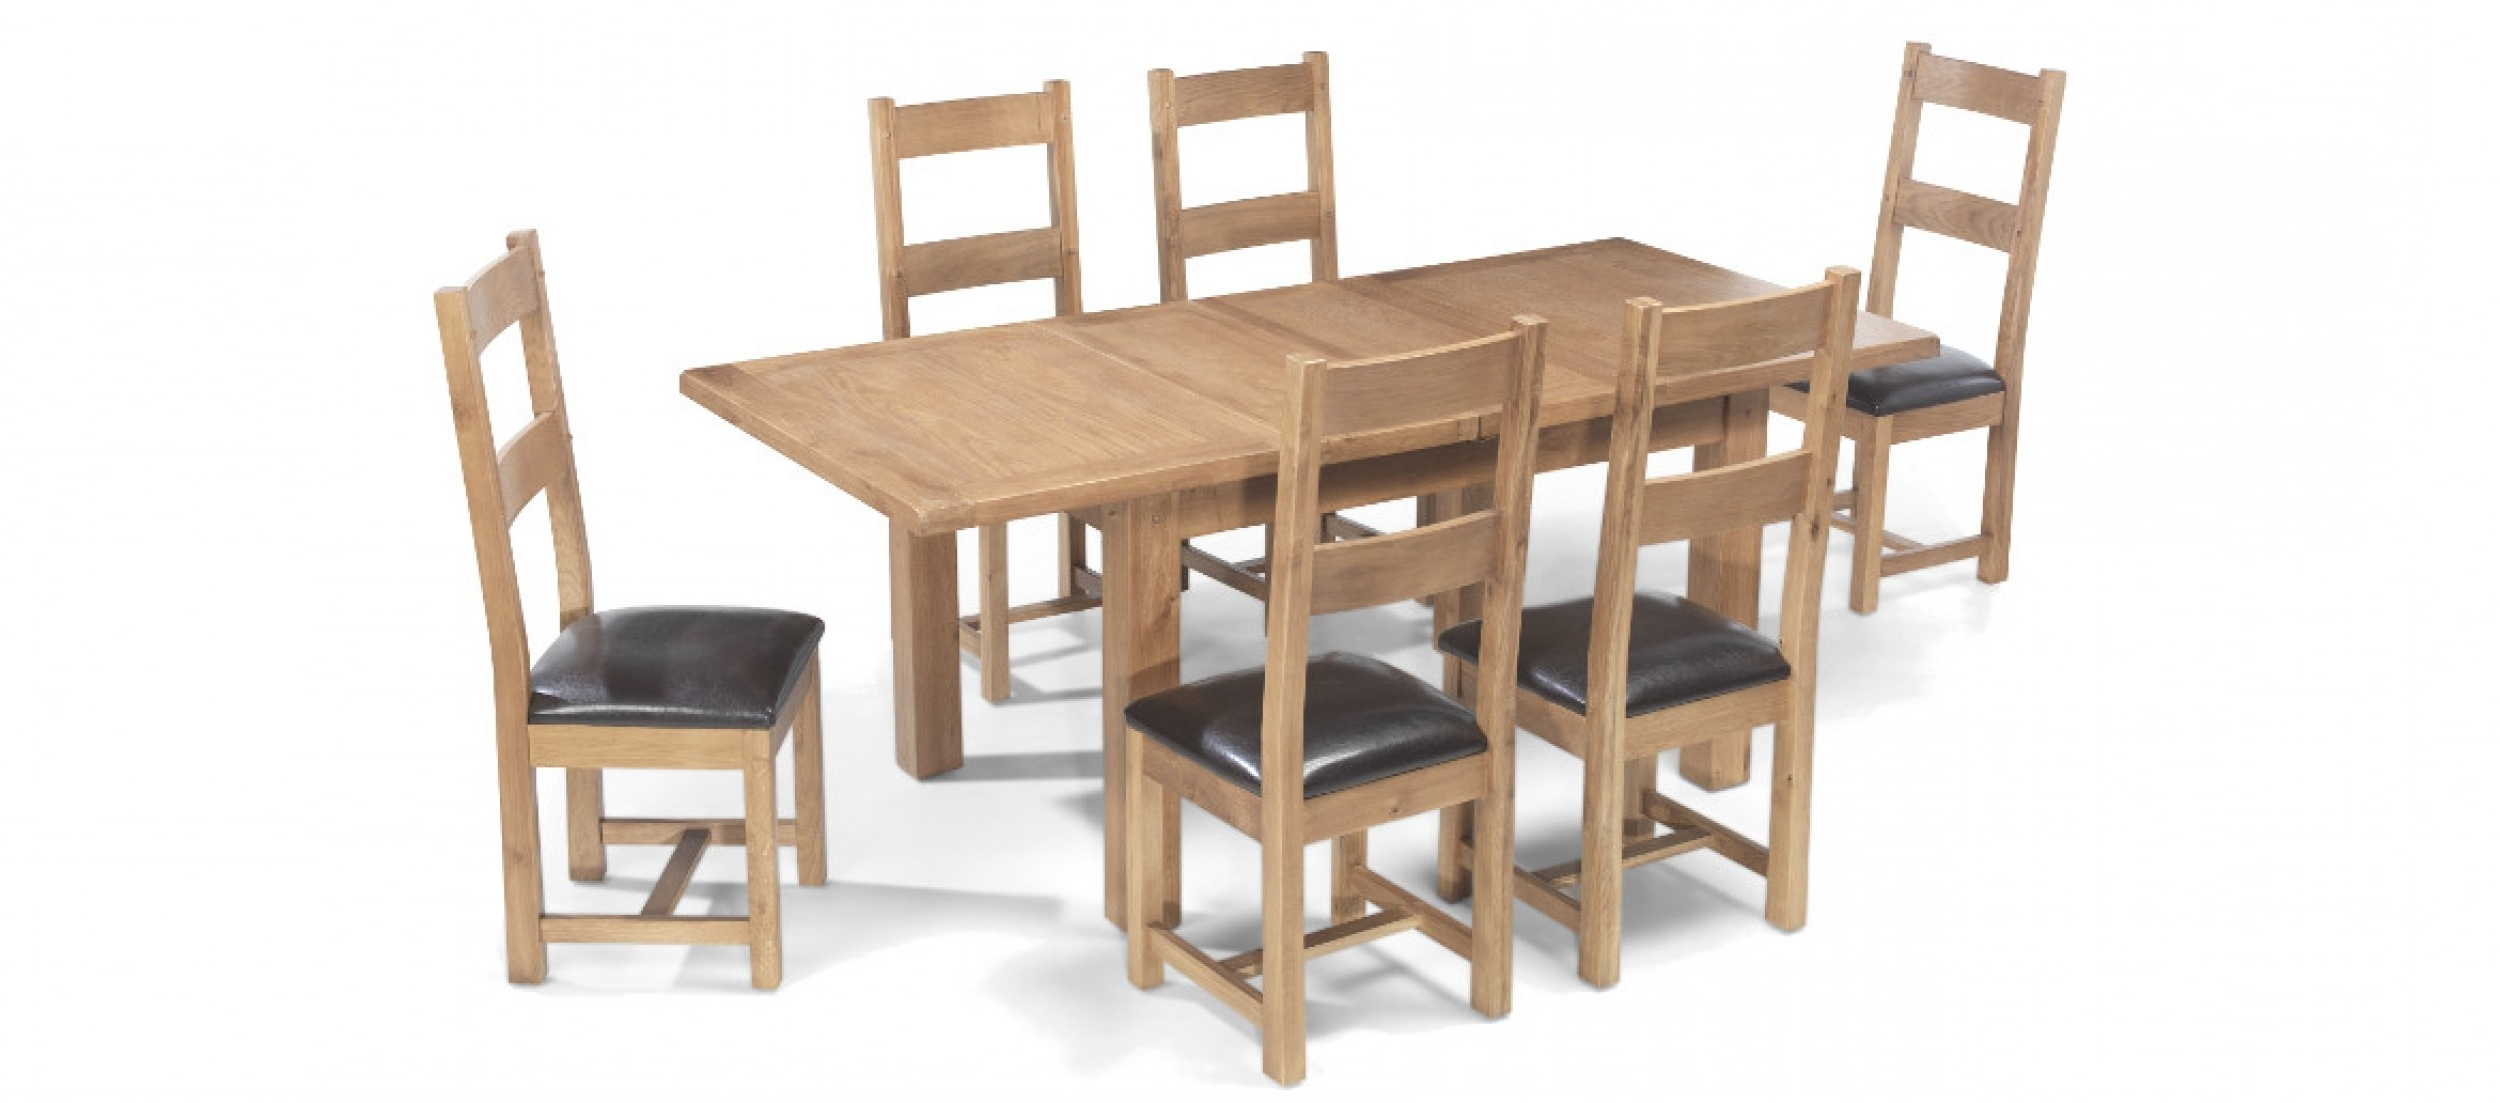 Quercus With Well Known Extendable Dining Room Tables And Chairs (View 20 of 25)